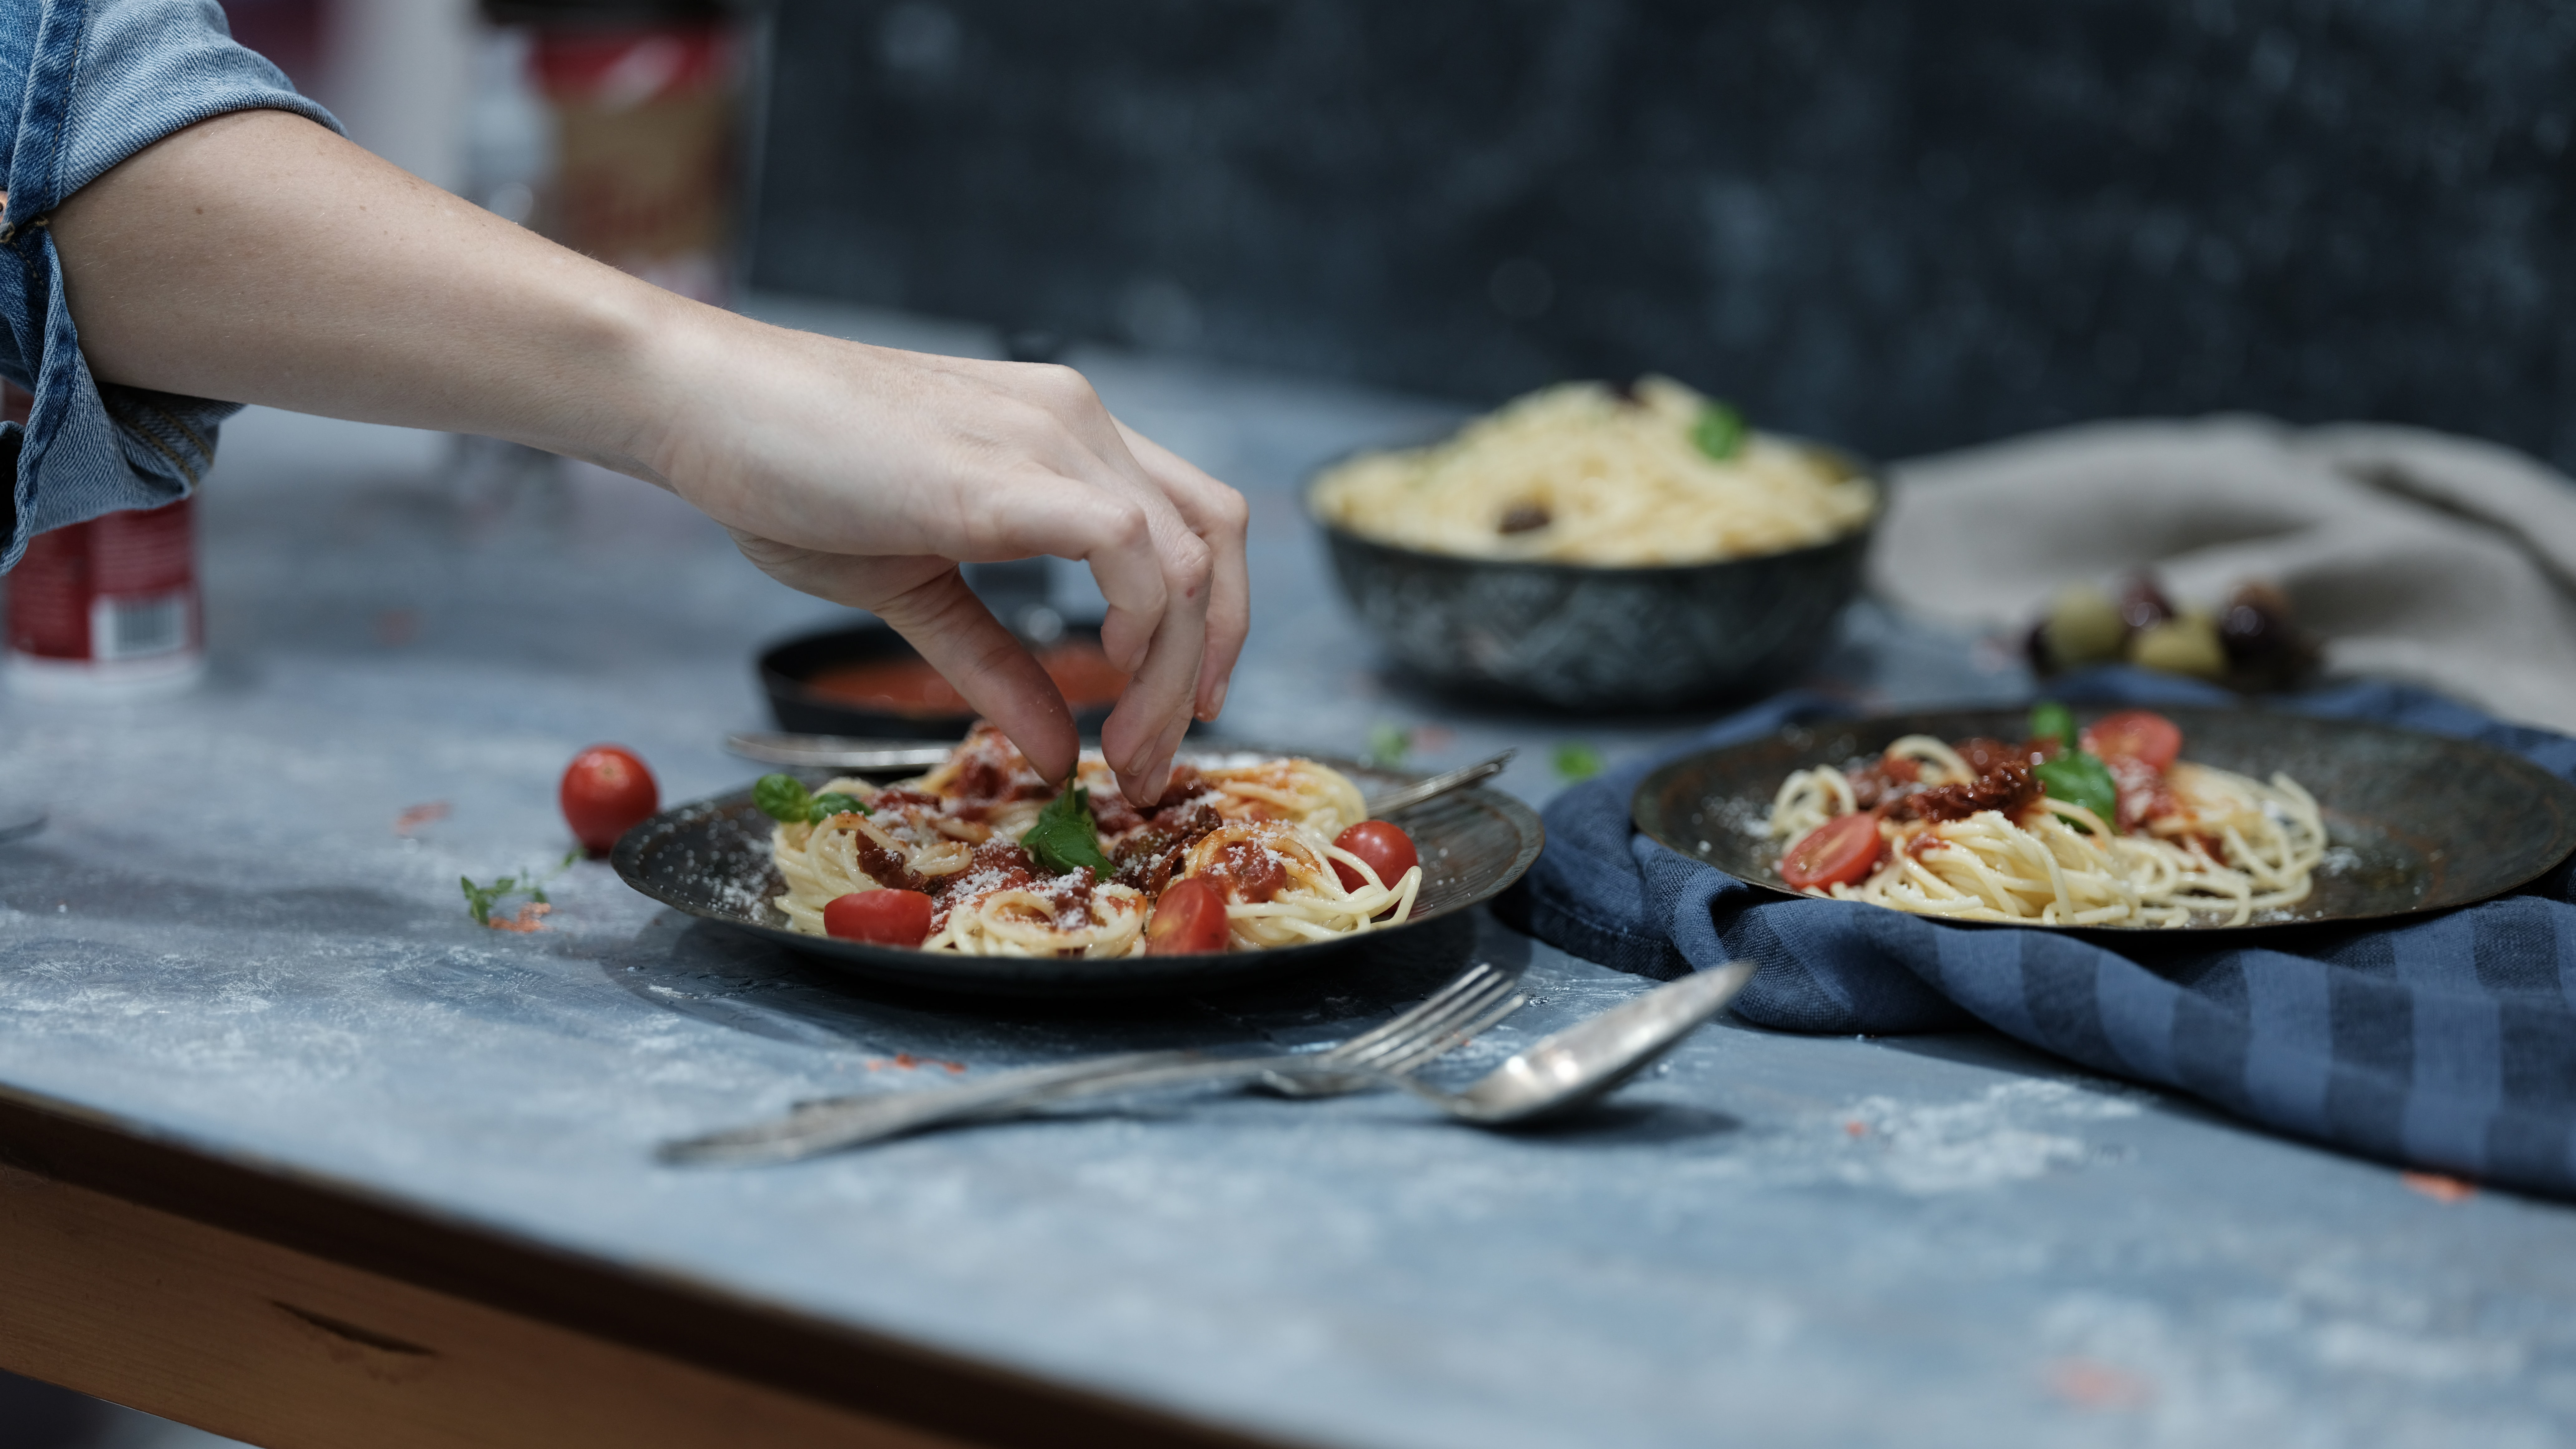 'Chef adding toppings to Pasta'